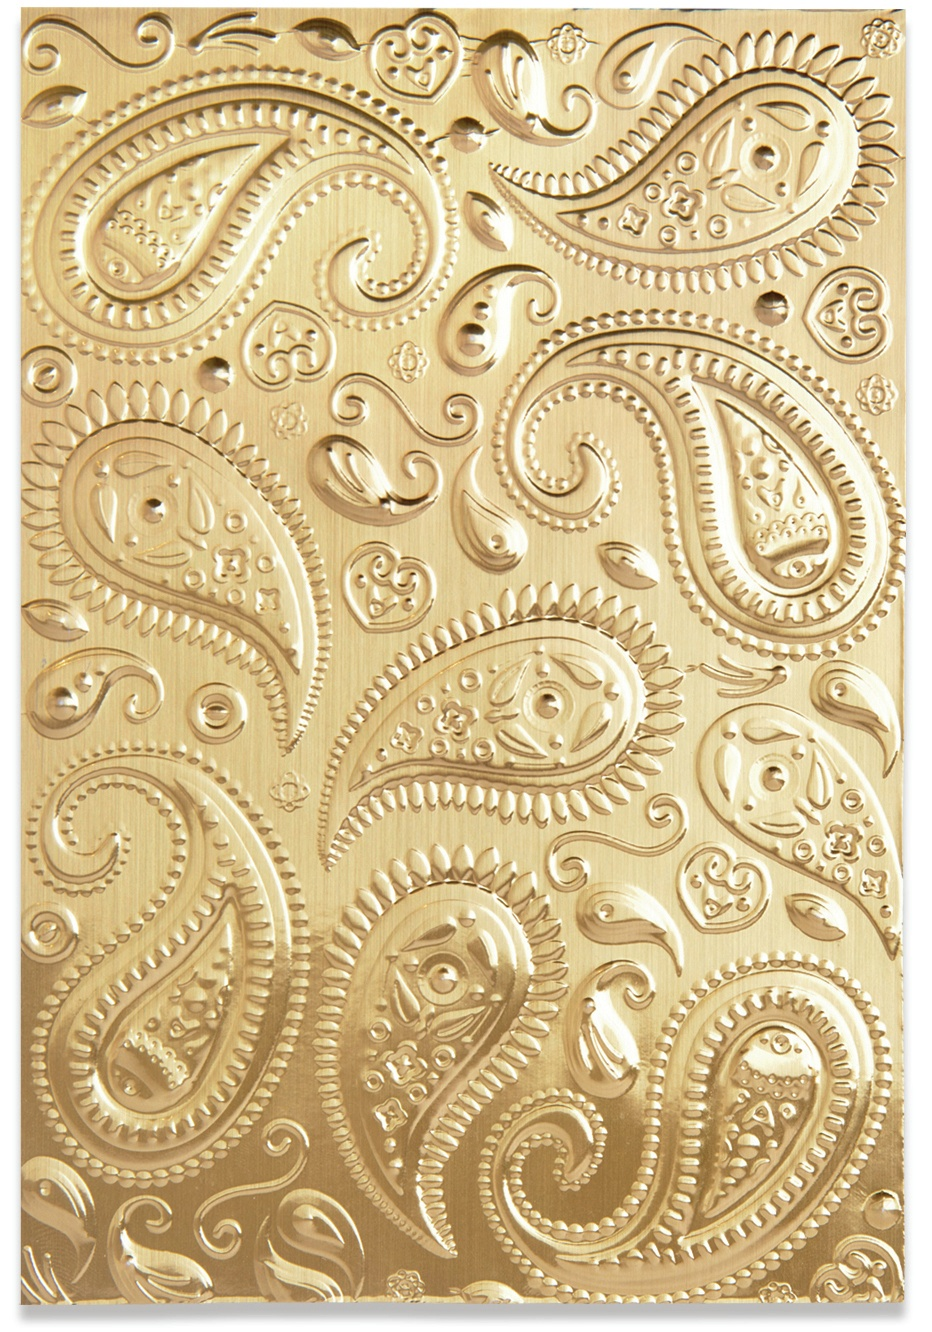 Sizzix 3D Textured Impressions By Georgie Evans Paisley